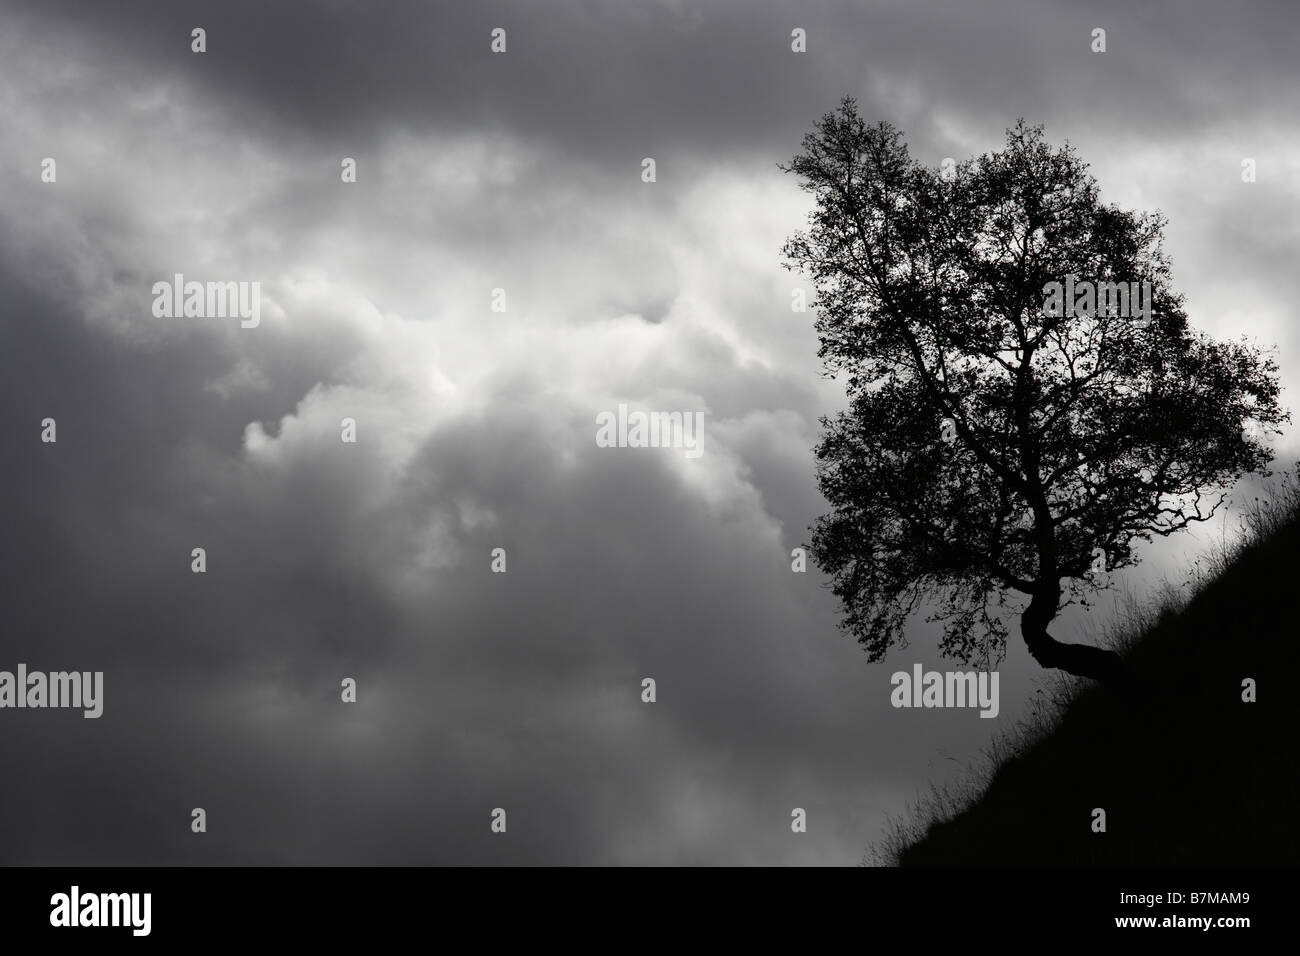 Silhouette of small tree on steep slope against dark grey clouds Perthshire Scotland - Stock Image